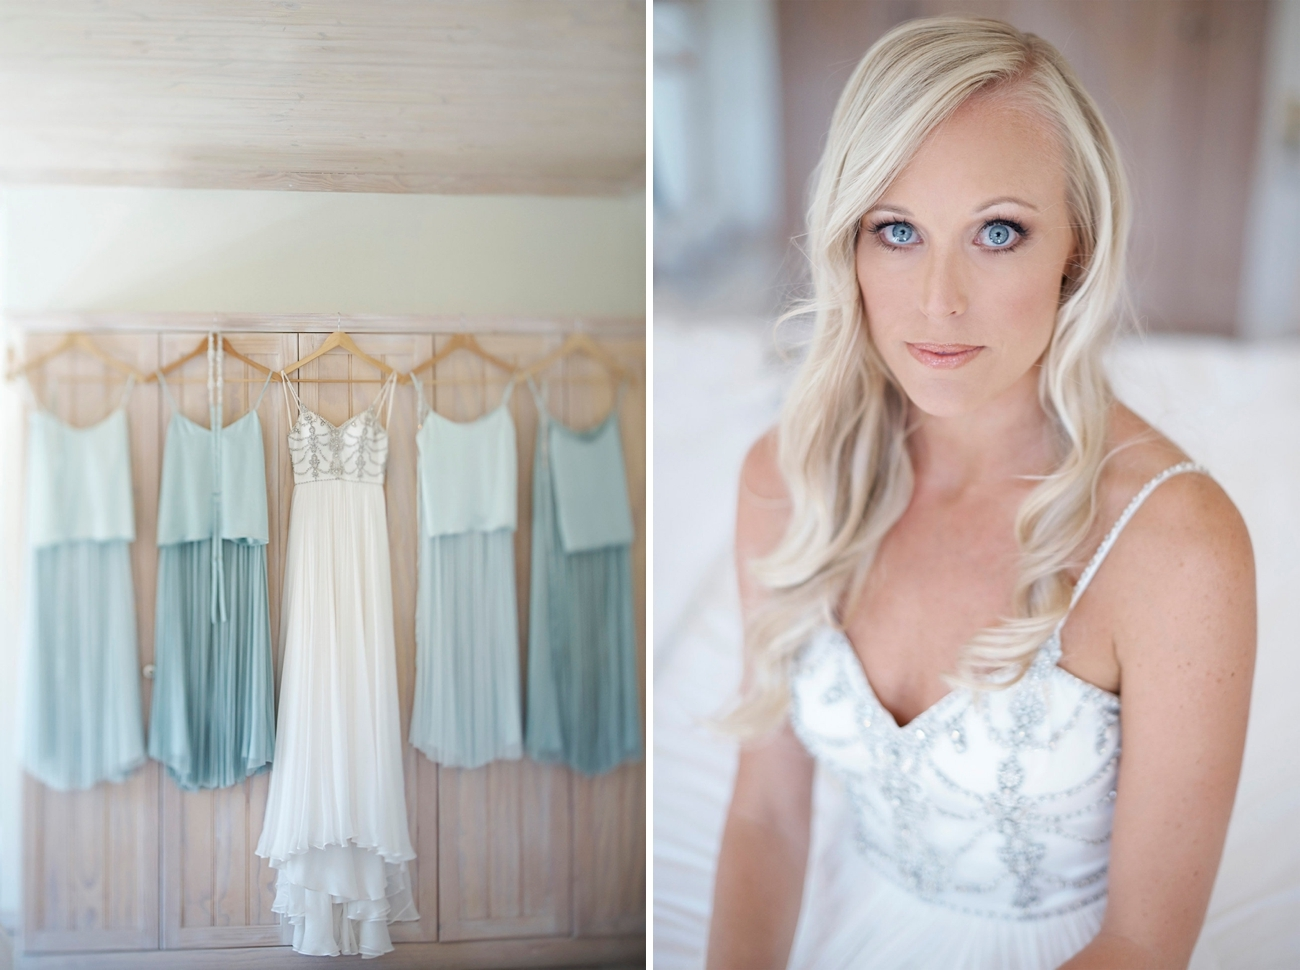 Mint Green Bridesmaid Dresses   Image: Knit Together Photography